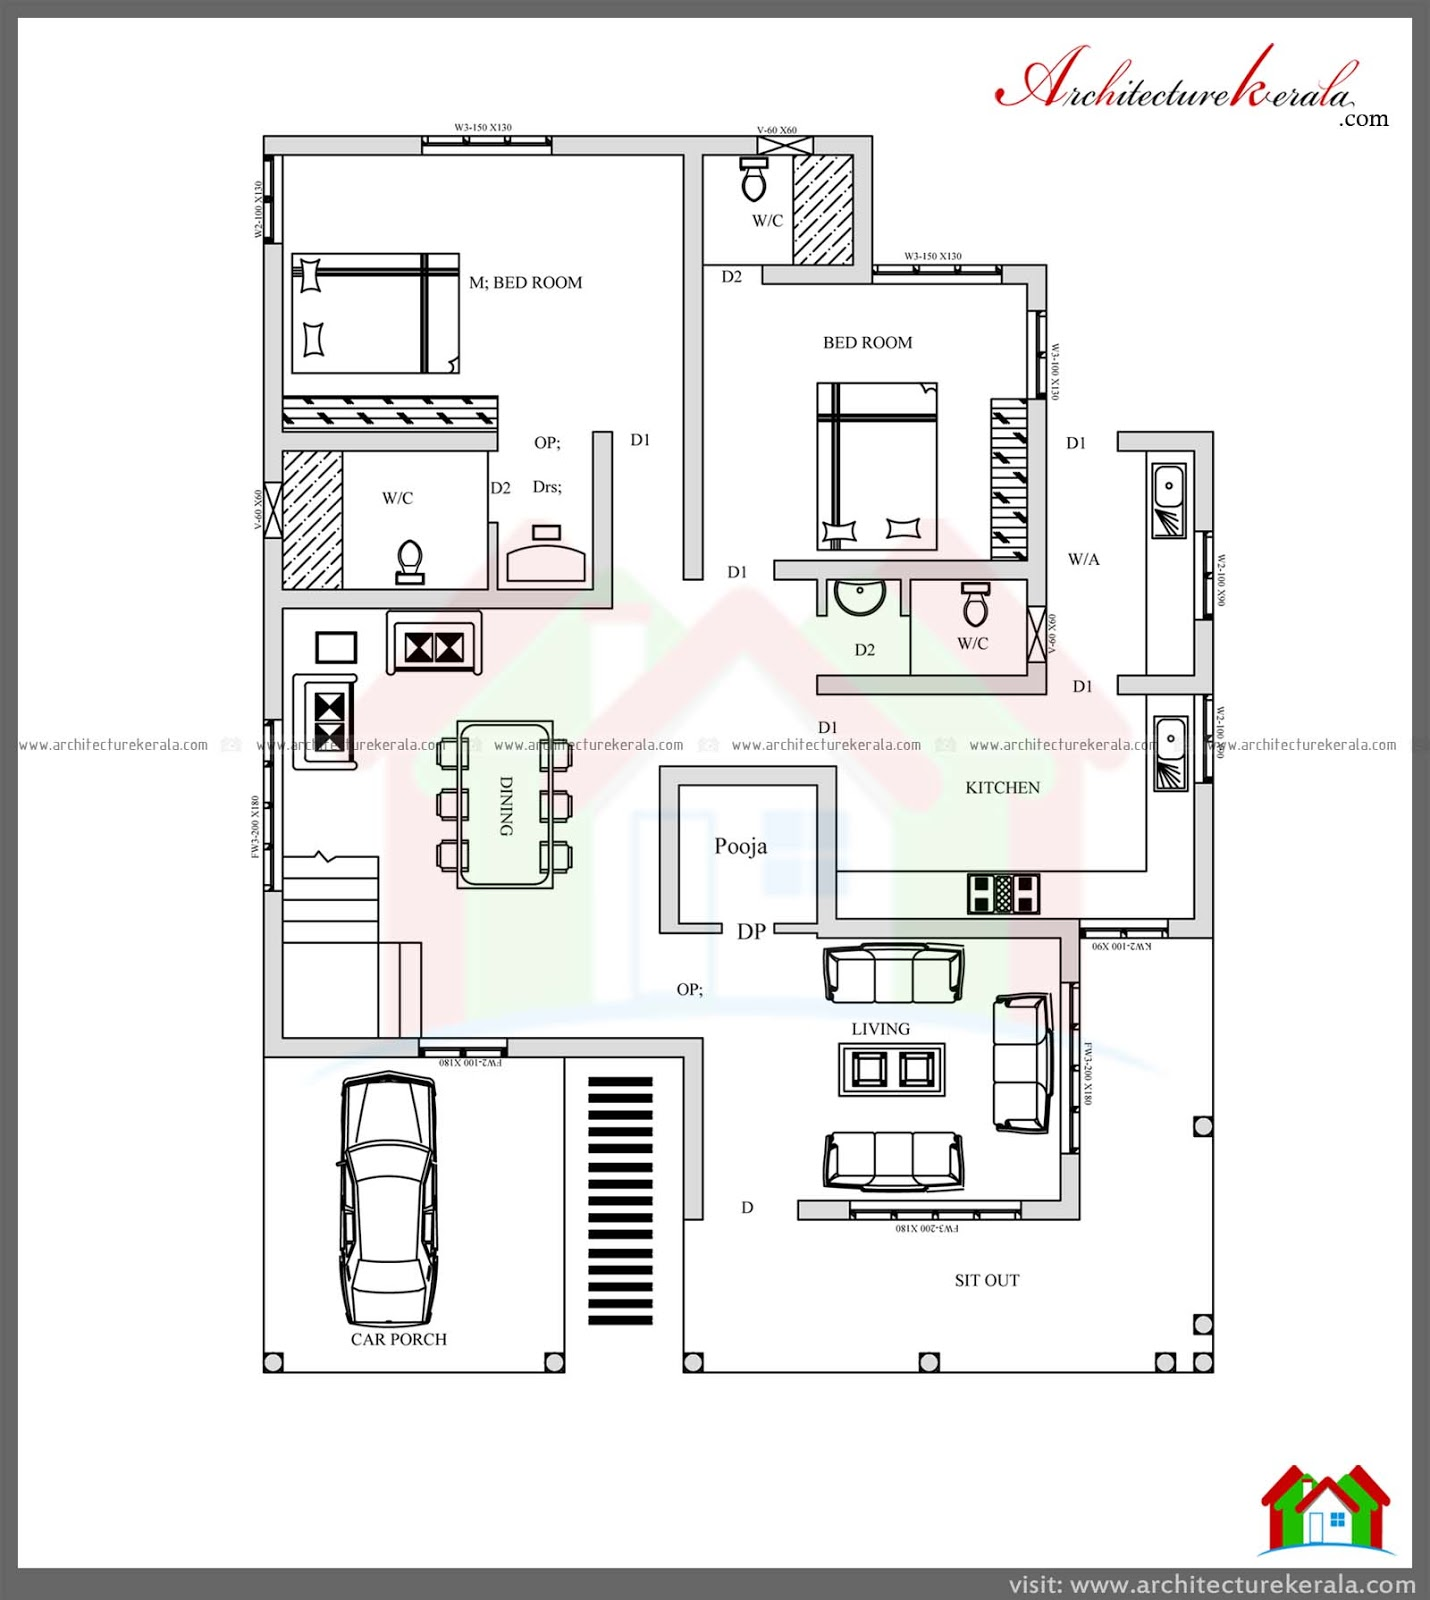 4 bed house plan with pooja room architecture kerala On house room plan